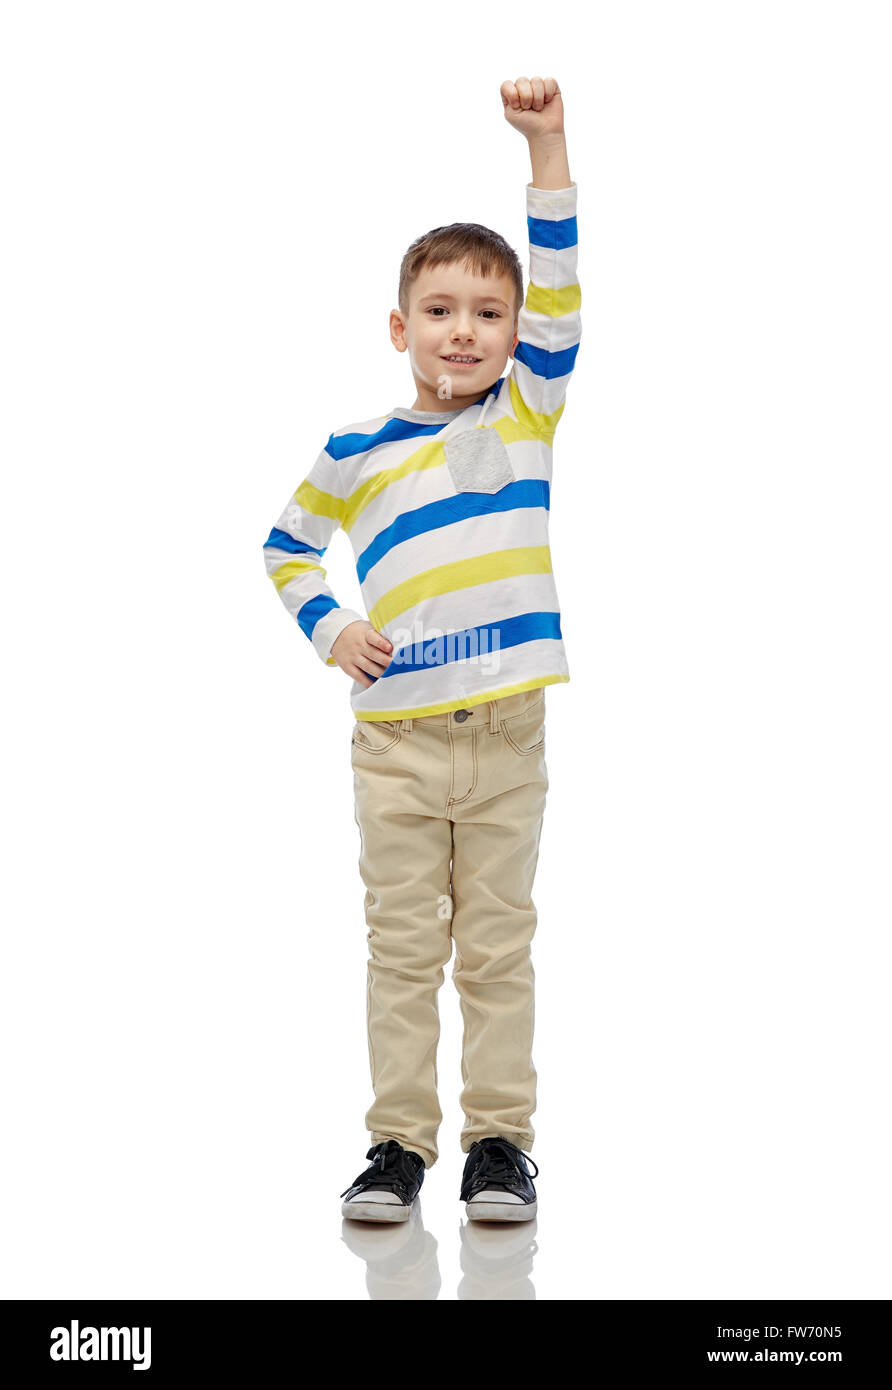 608c11a030227 happy smiling little boy with raised hand Stock Photo: 101572497 - Alamy